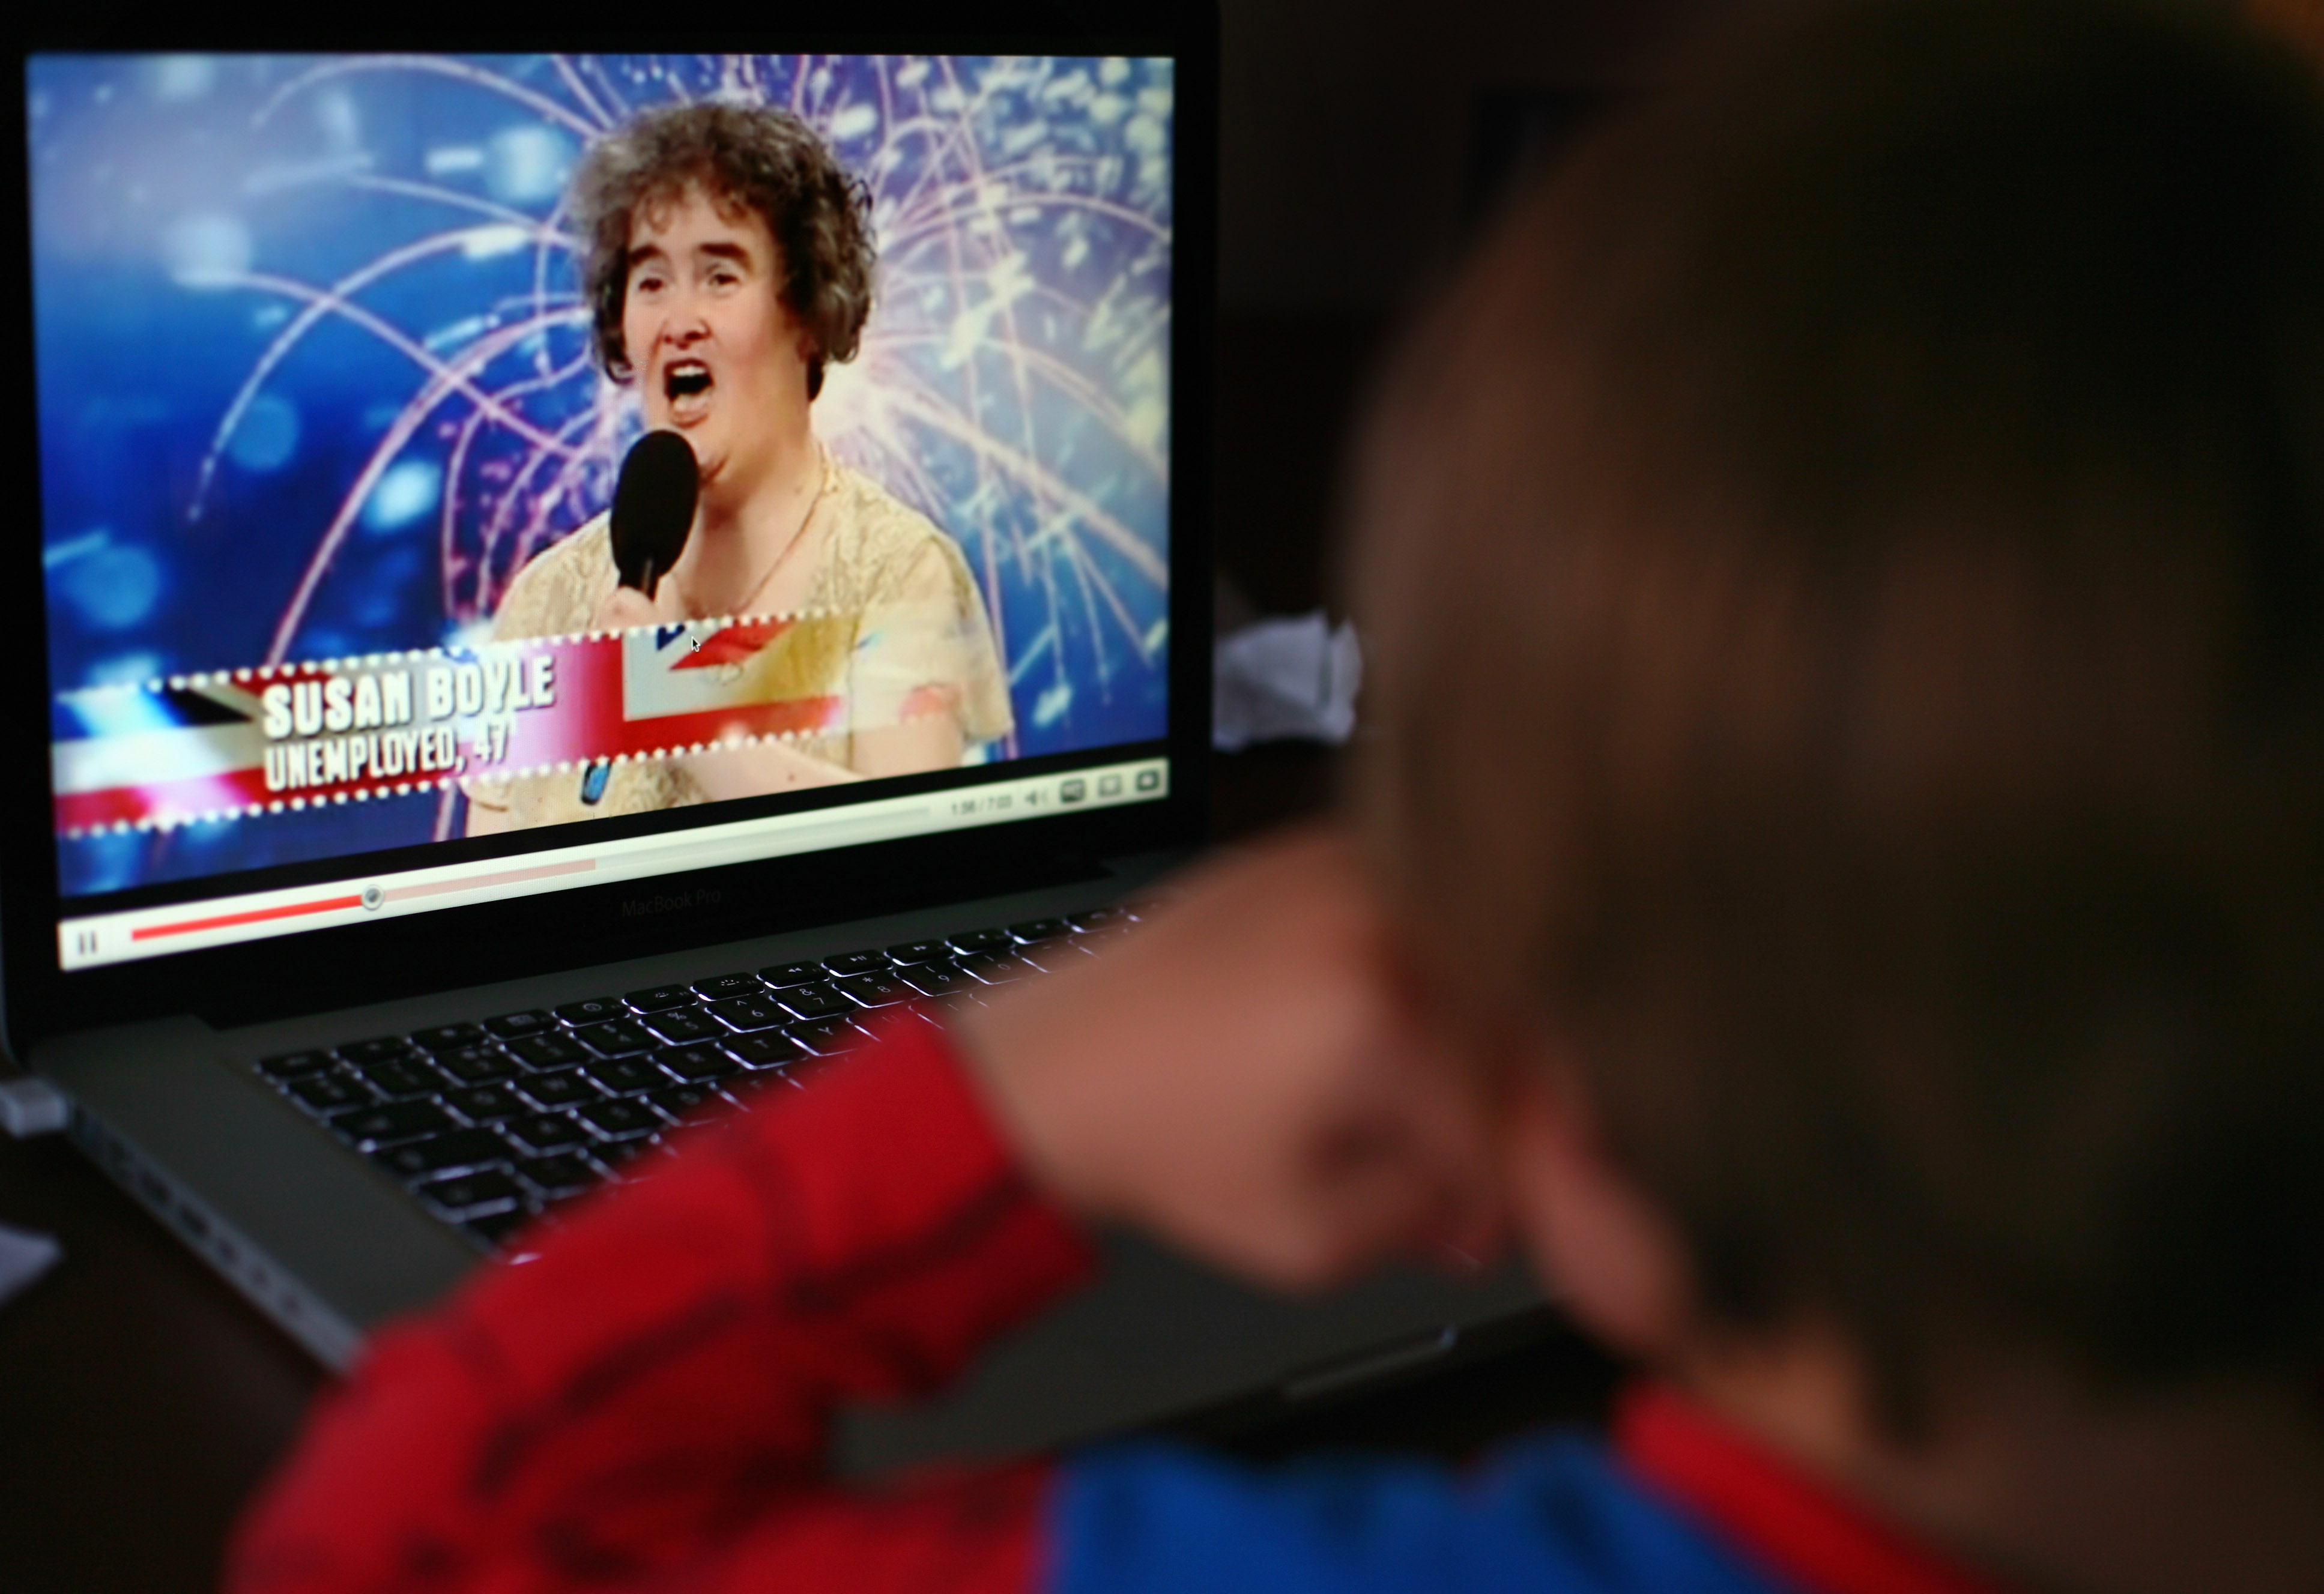 A young boy watches Britain's Got Talent contestant Susan Boyle on You Tube on April 21, 2009 in Glasgow, Scotland. Ms Boyle has become a worldwide sensation after her singing talents stunned judges on the TV show Britain's Got Talent. (Photo by Jeff J Mitchell/Getty Images)